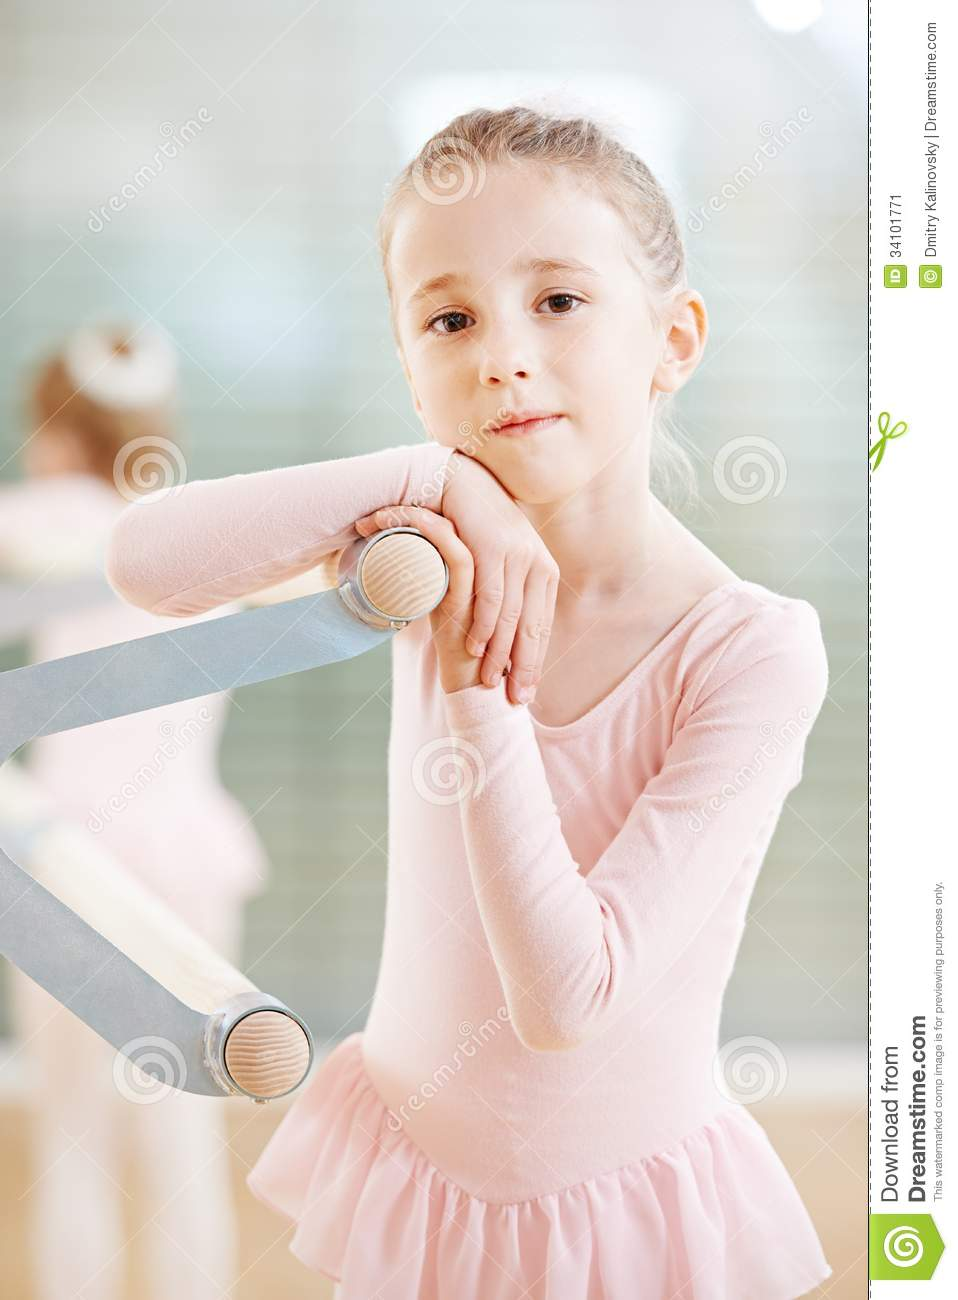 94198c21a181 Girl at ballet training stock image. Image of dance